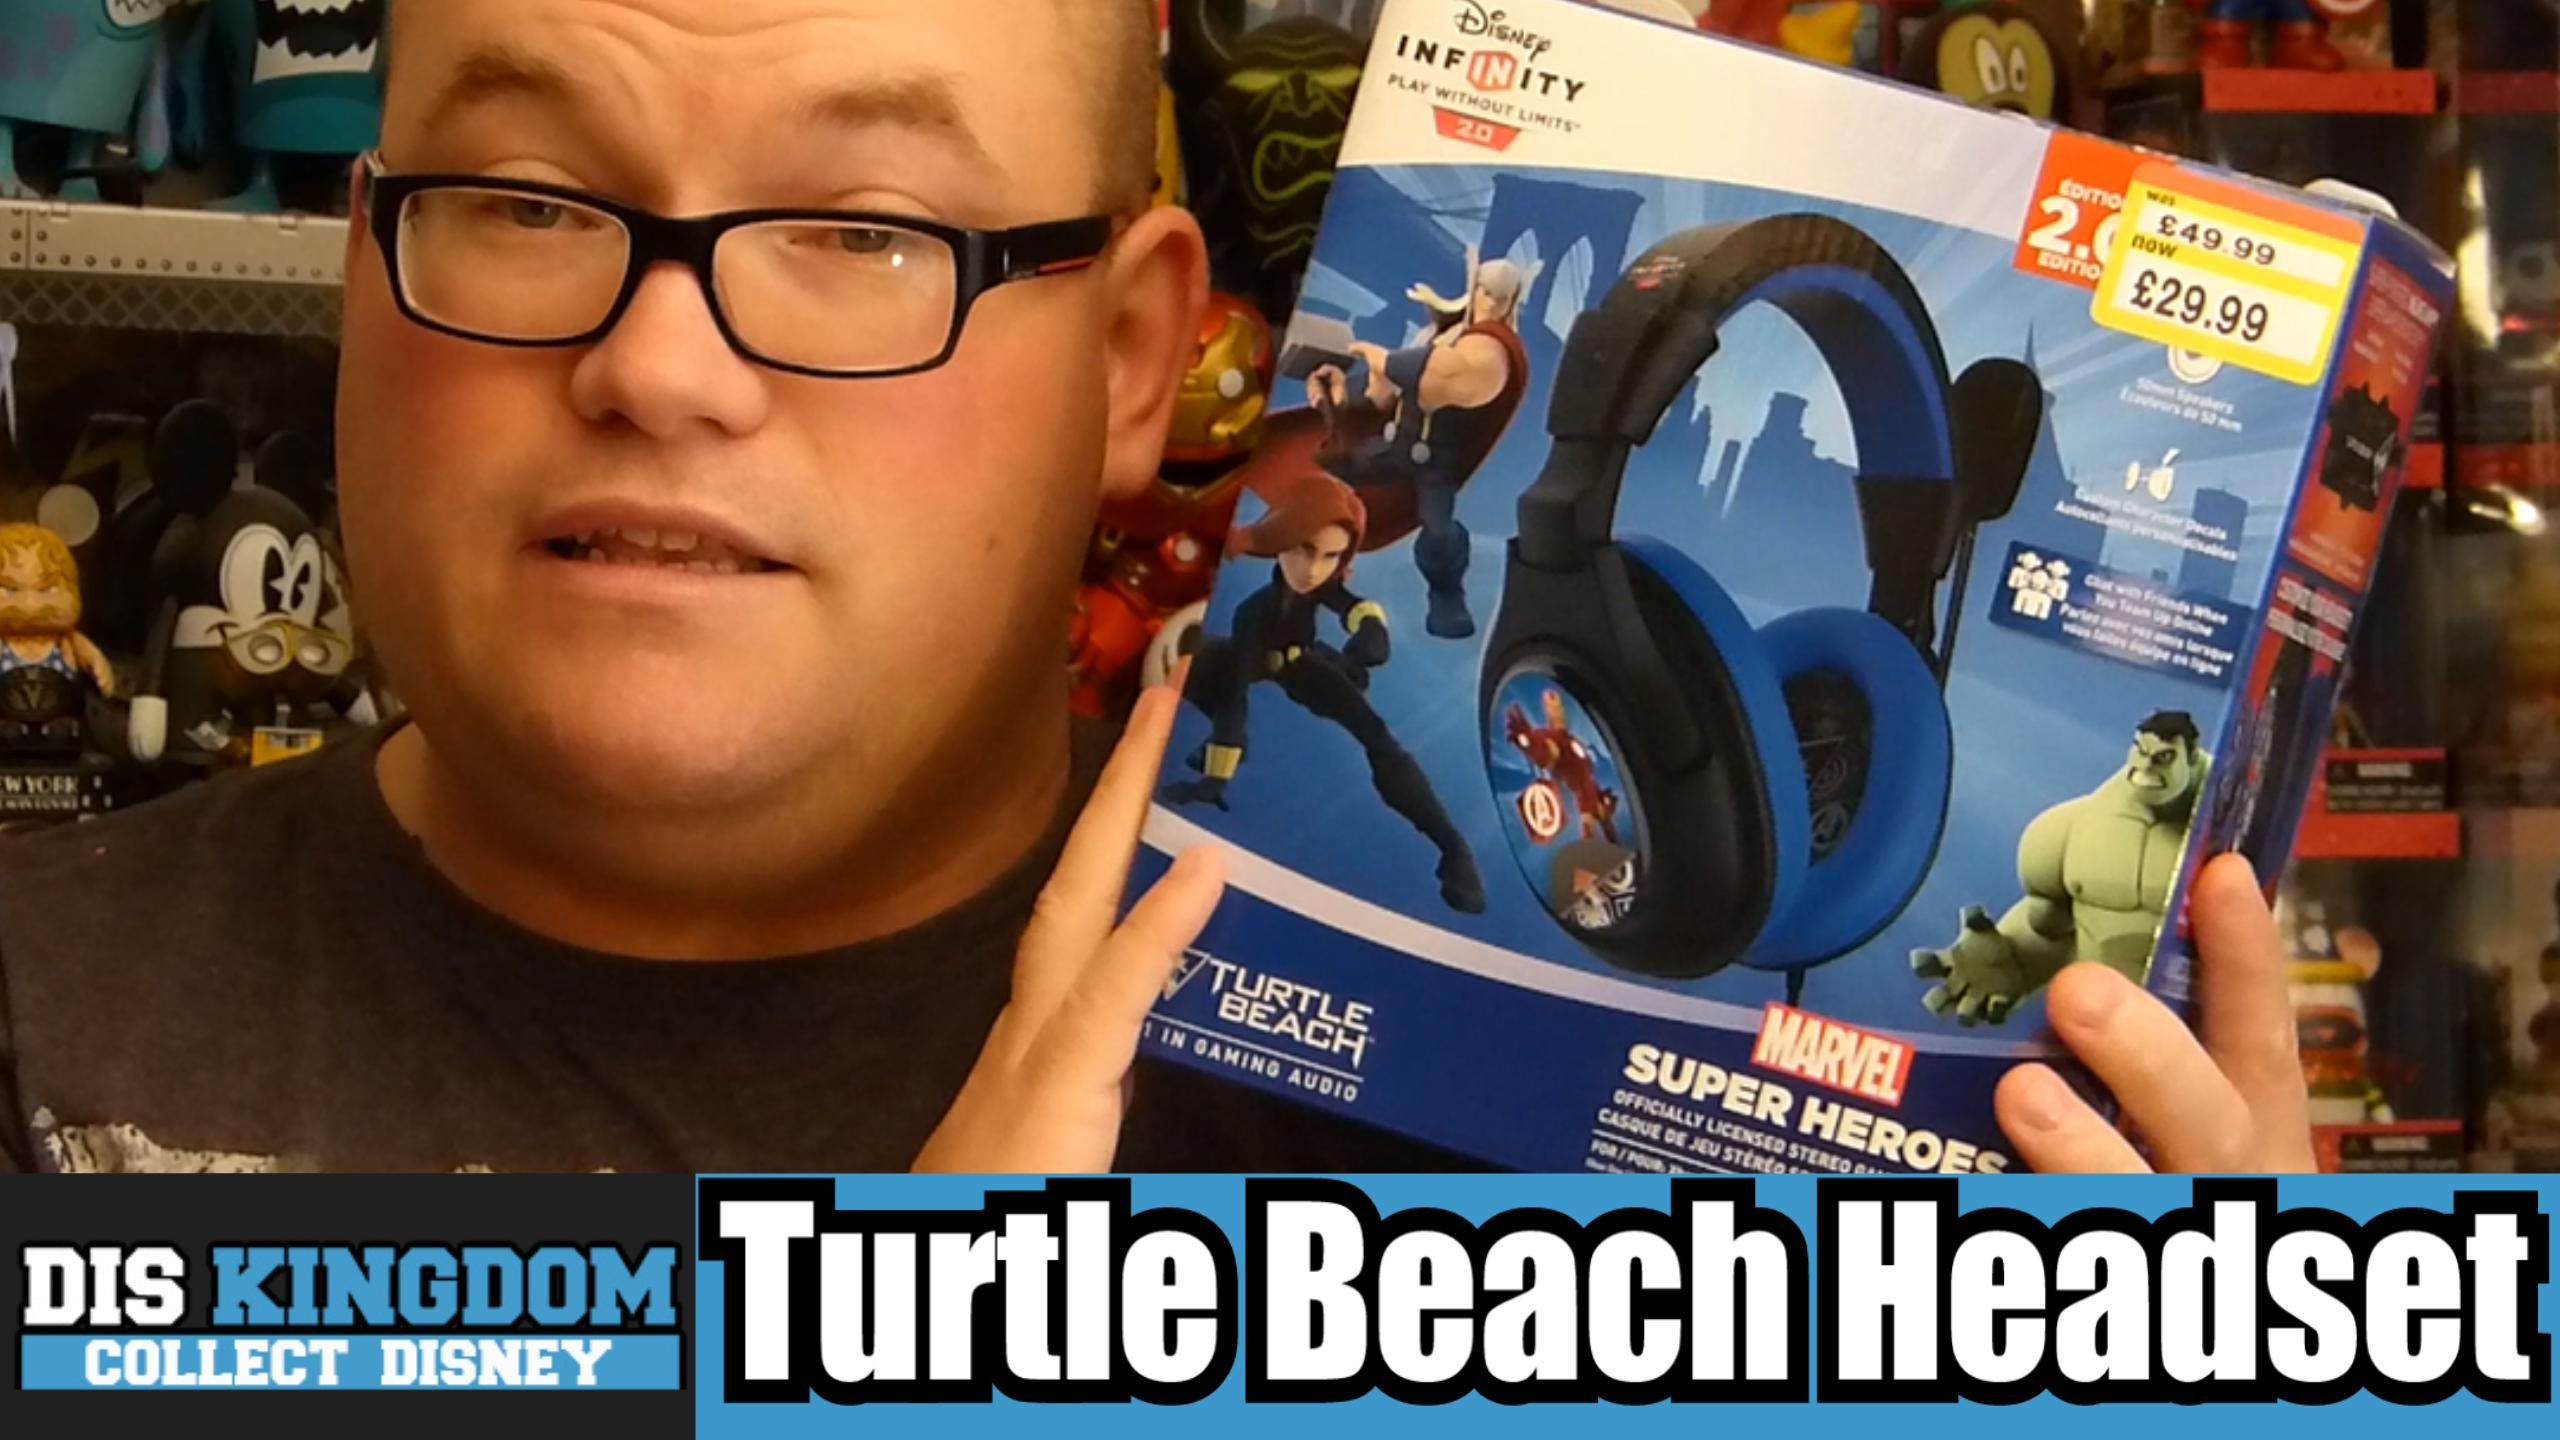 Disney Infinity 2.0 Turtle Beach Headset Unboxing Review